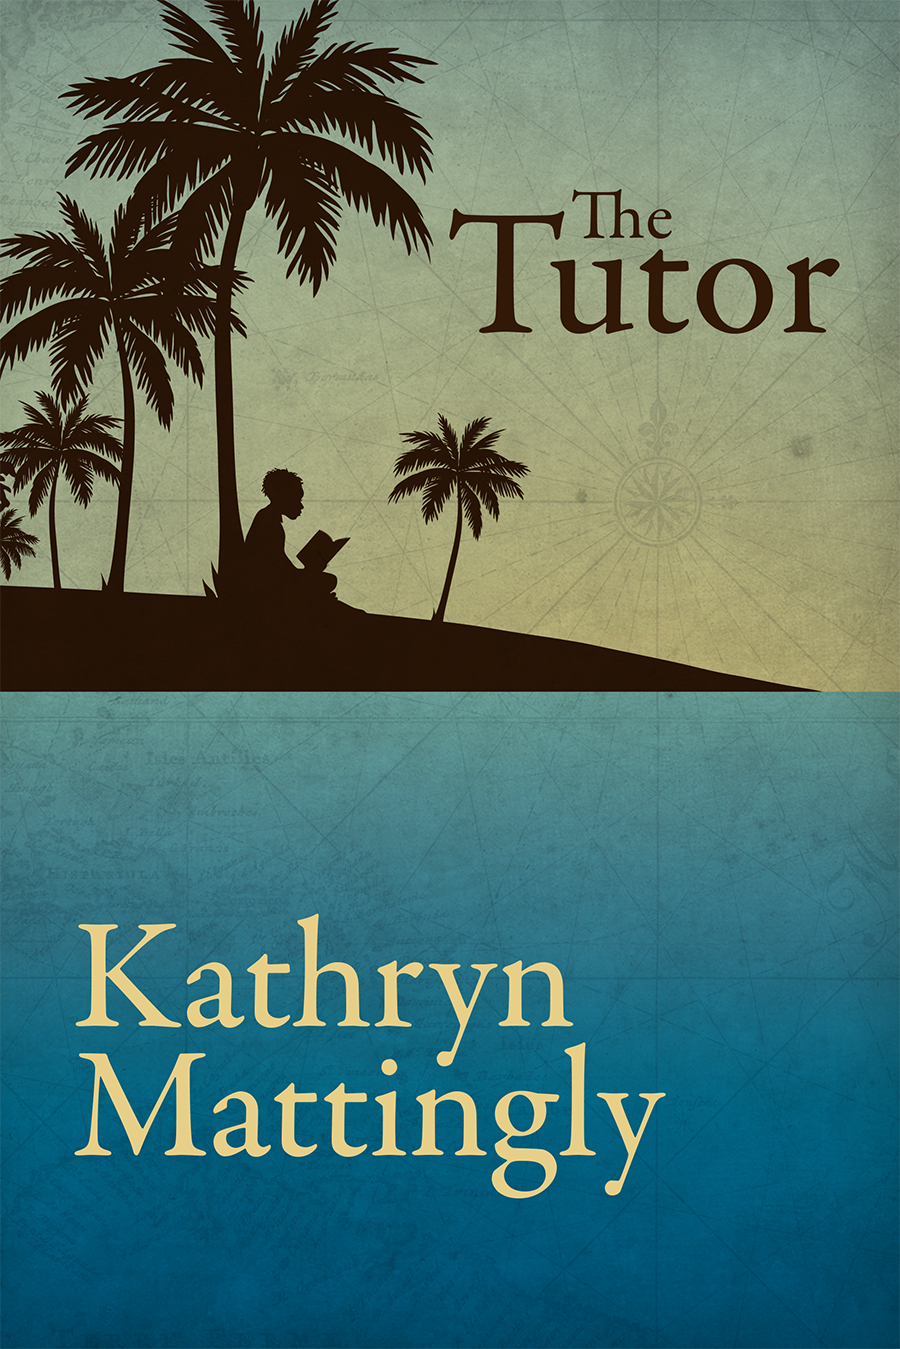 Cover Reveal: The Tutor